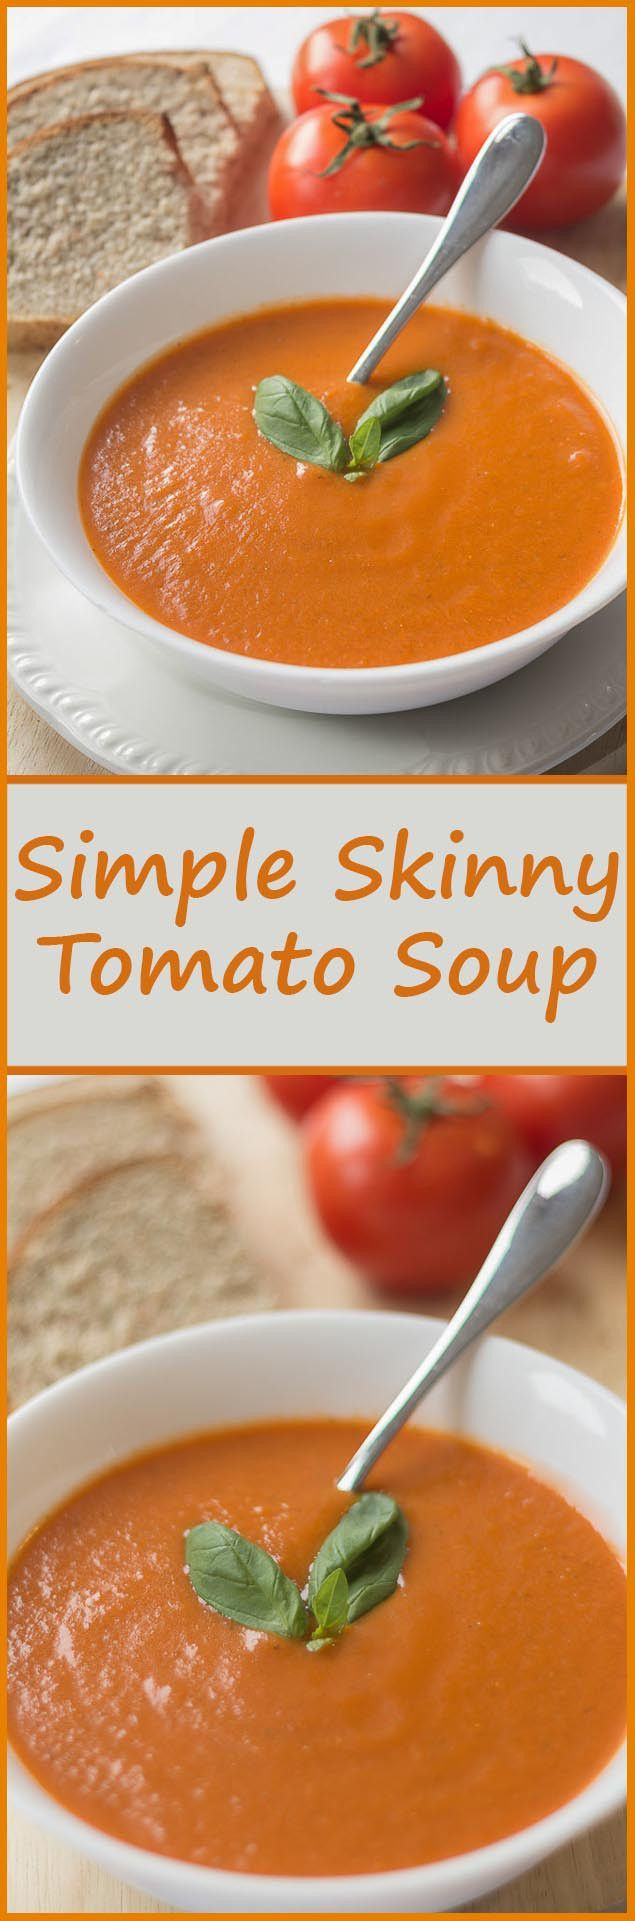 It's simple skinny tomato soup. It's low in calories, carbs, fat and cost. This soup is so full of tomato flavour that I practically guarantee it could make you reluctant to go back to ever buying tinned soup ever again!